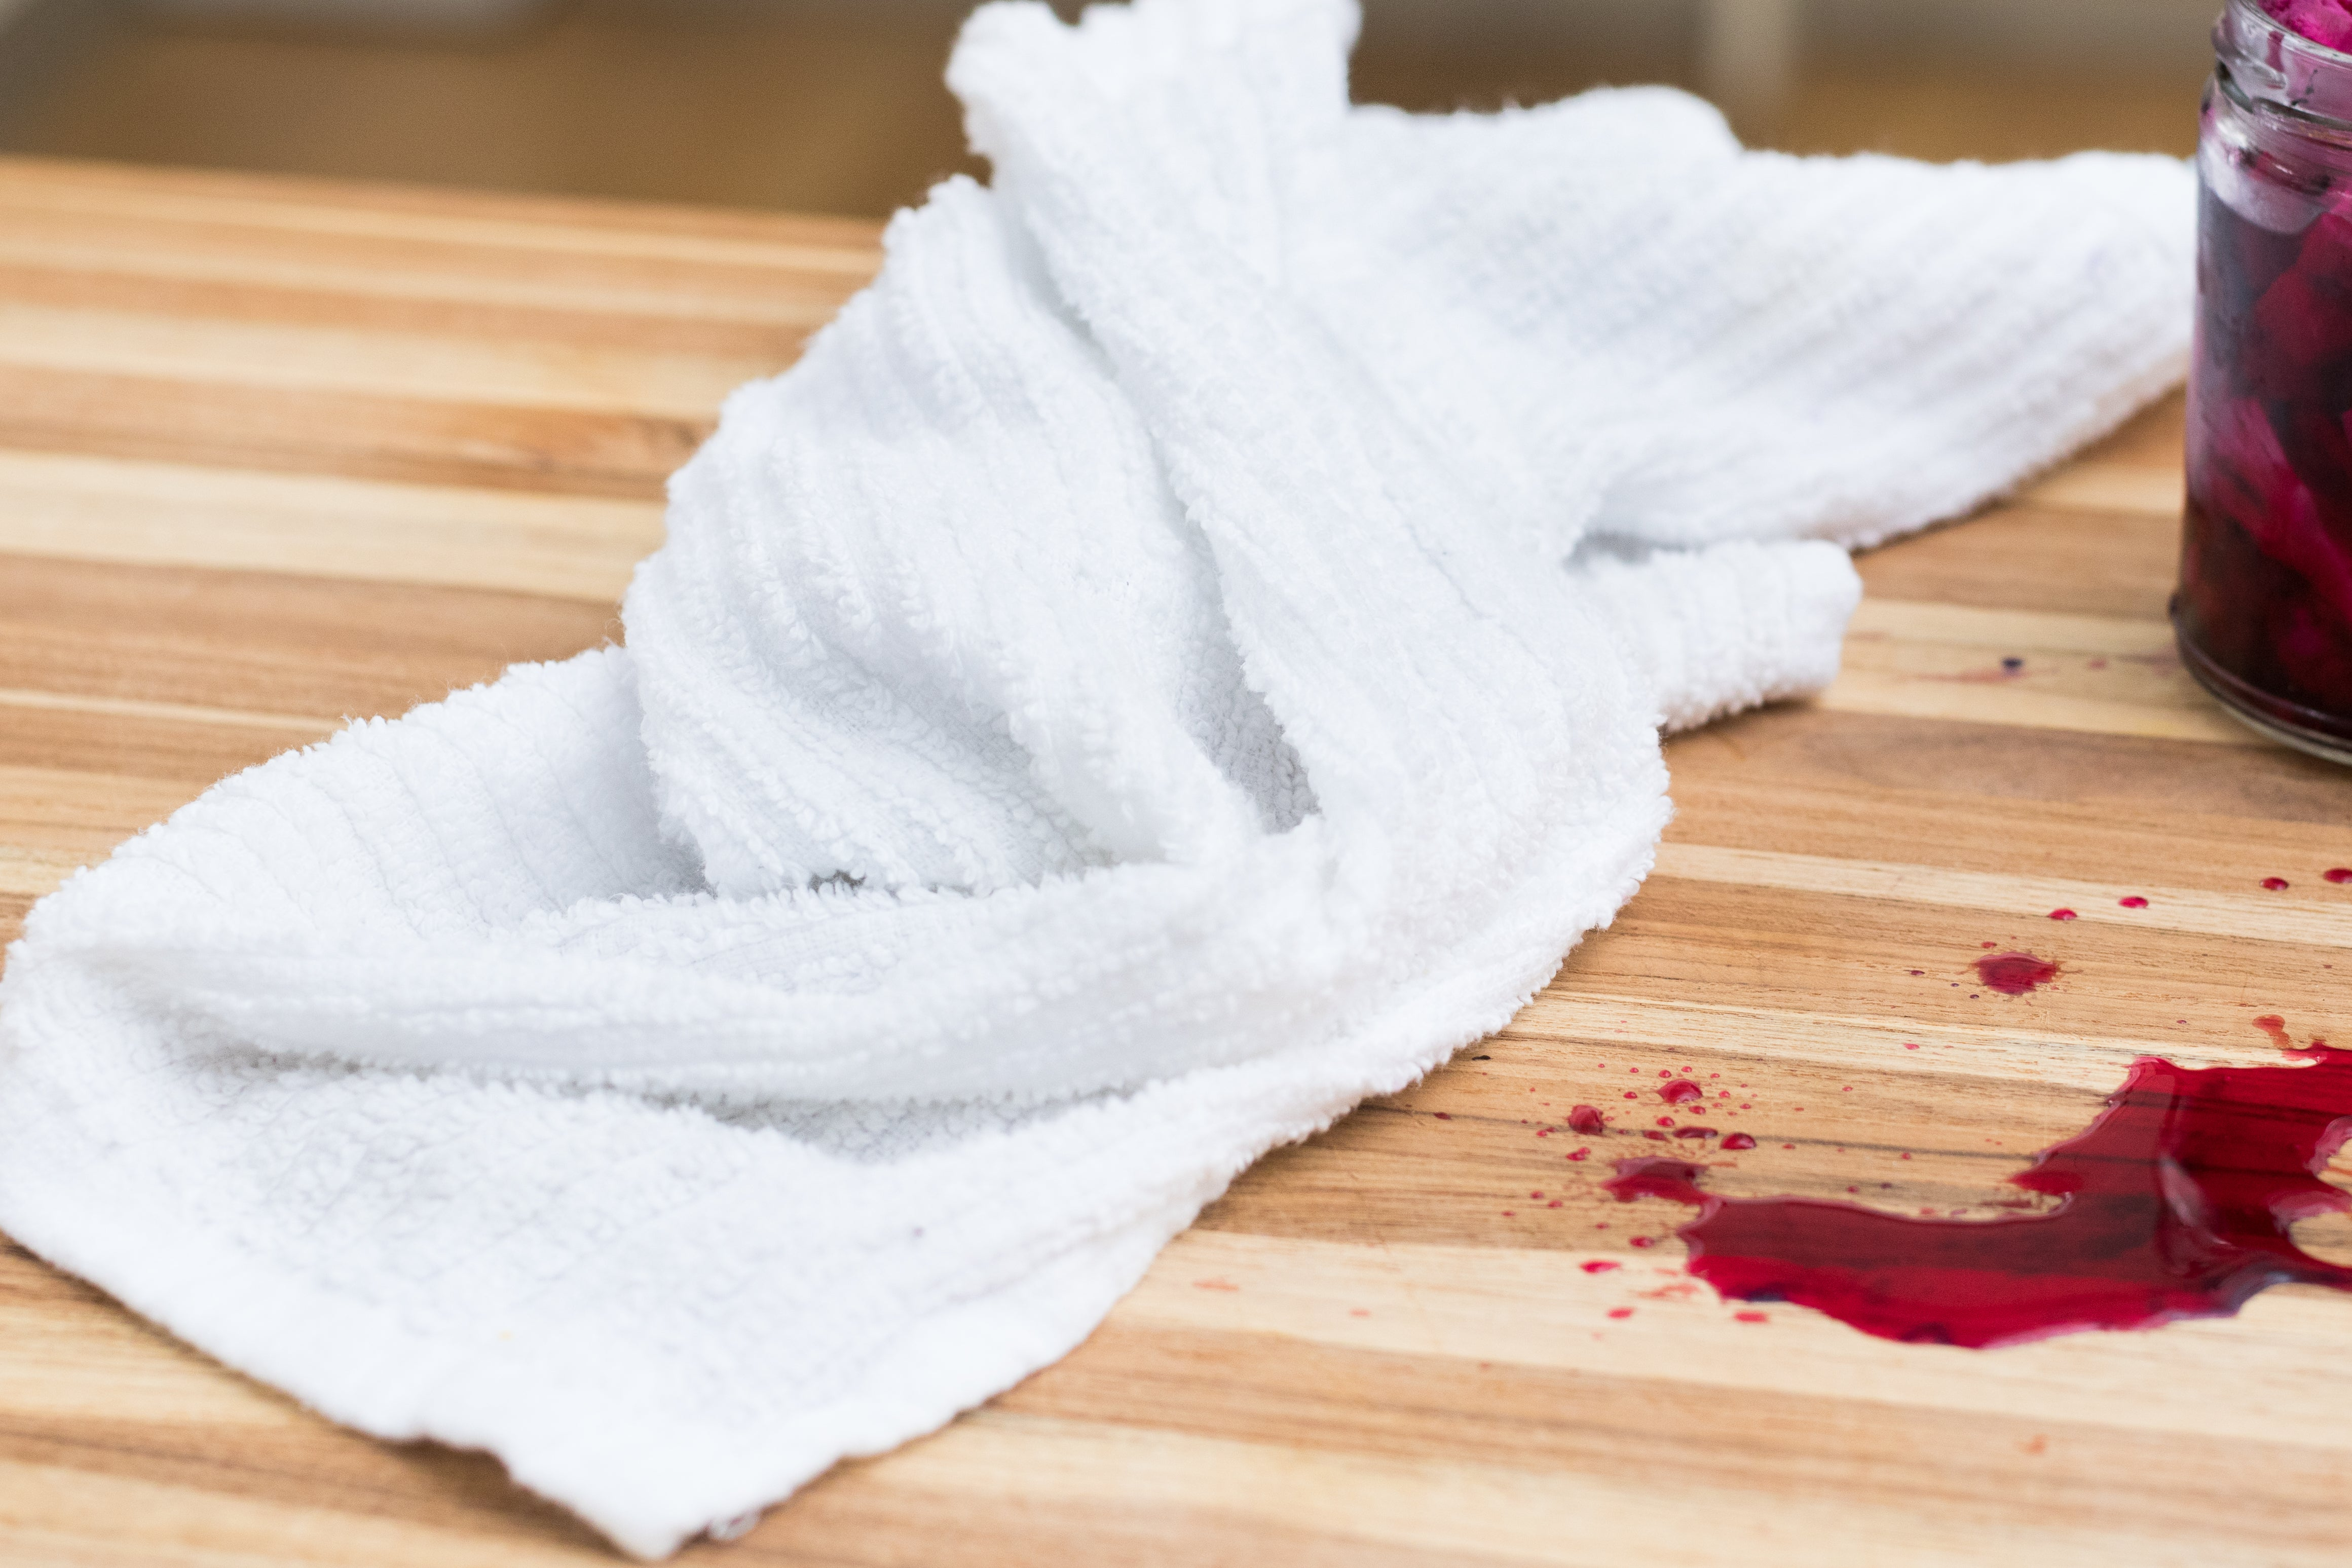 Towel near a spill